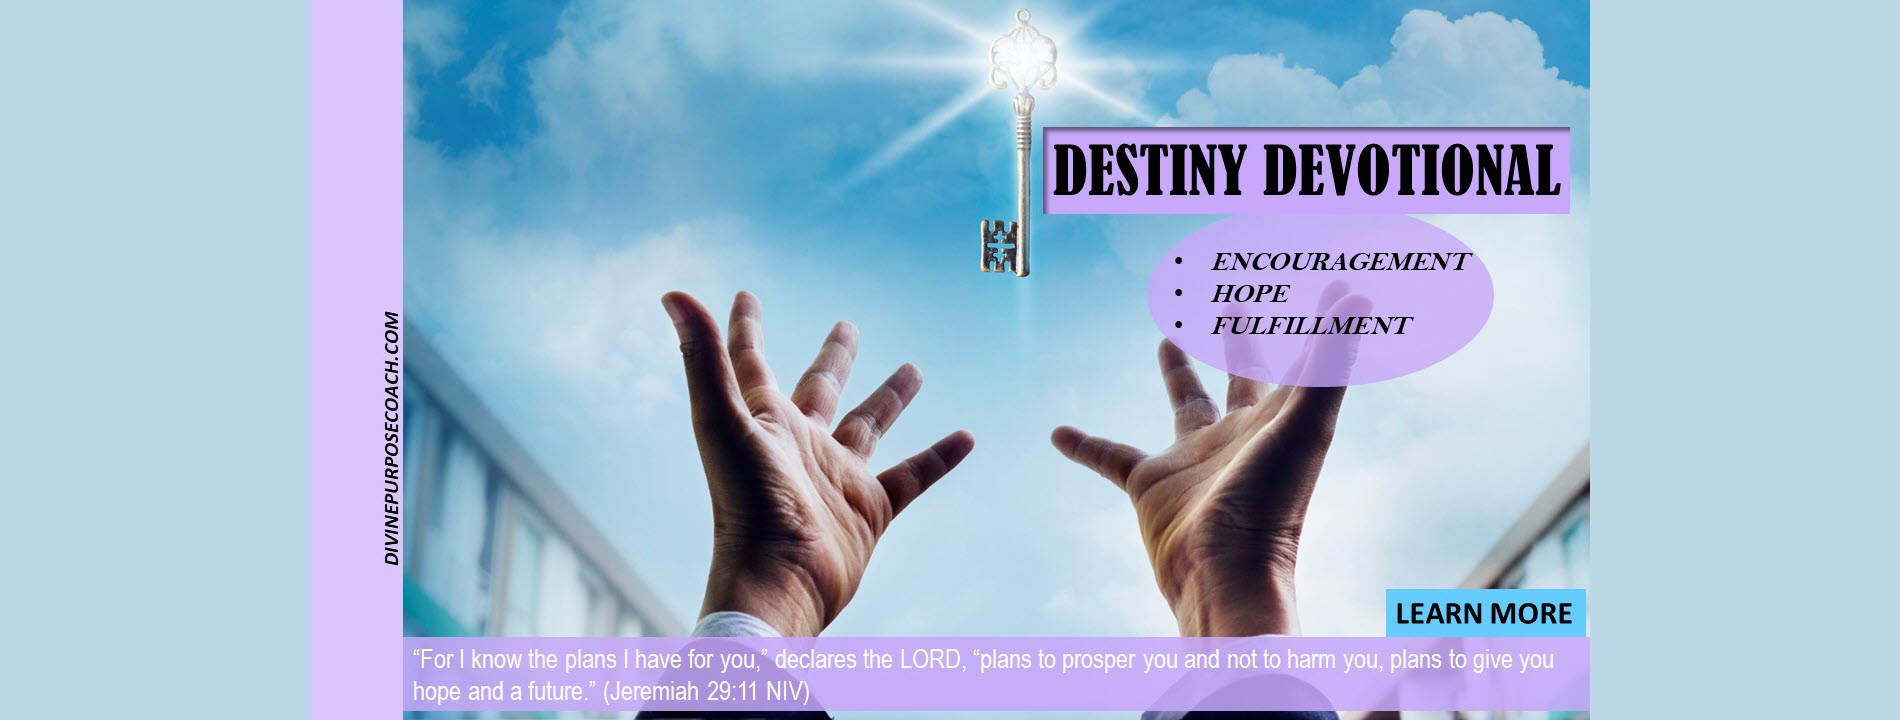 Destiny Devotional